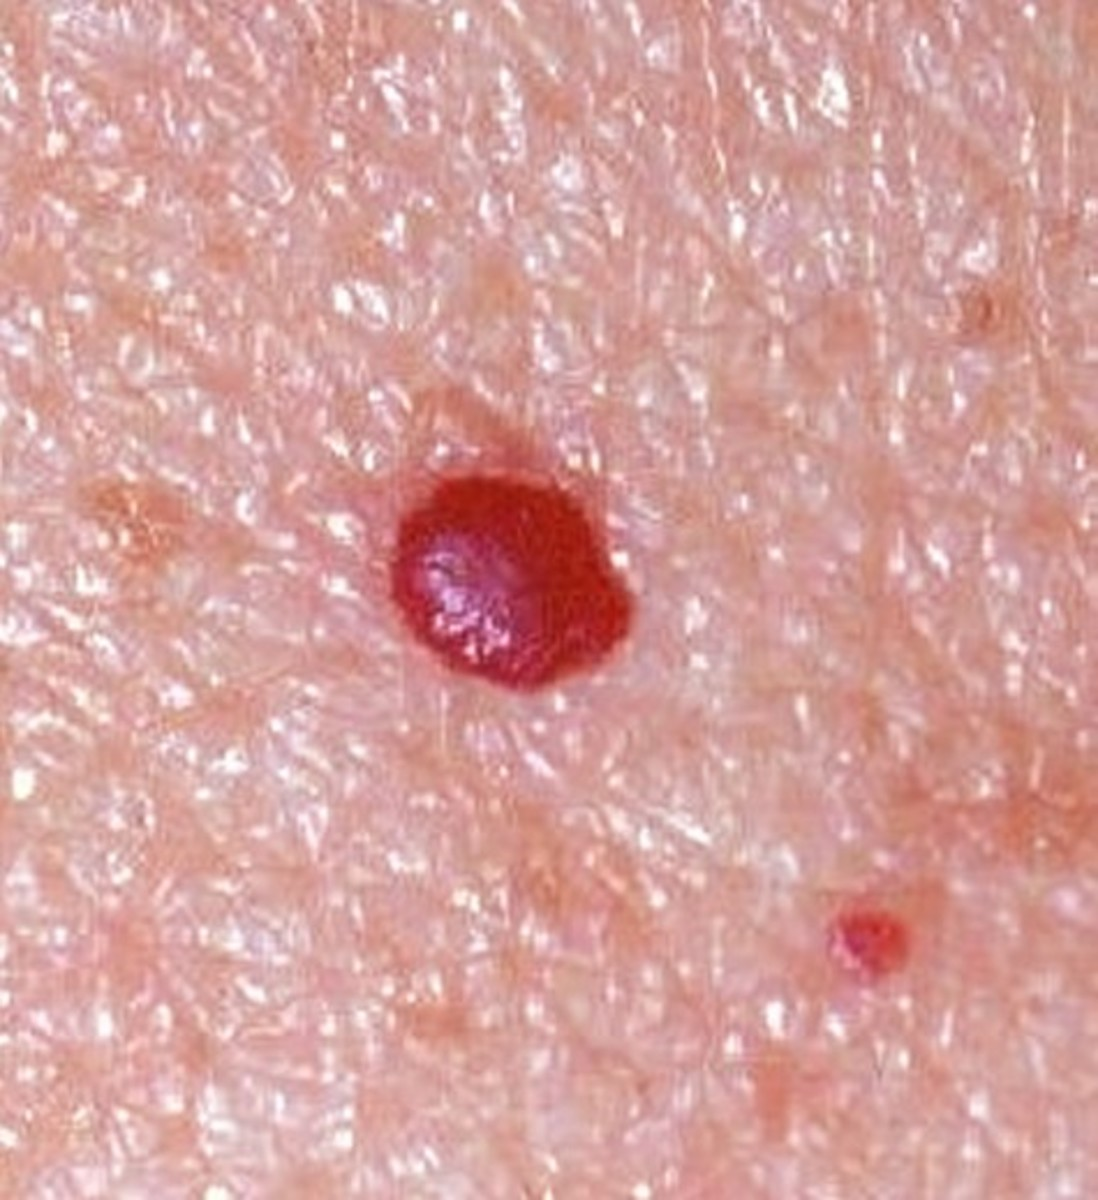 Cherry Angiomas Pictures Symptoms Causes Treatment